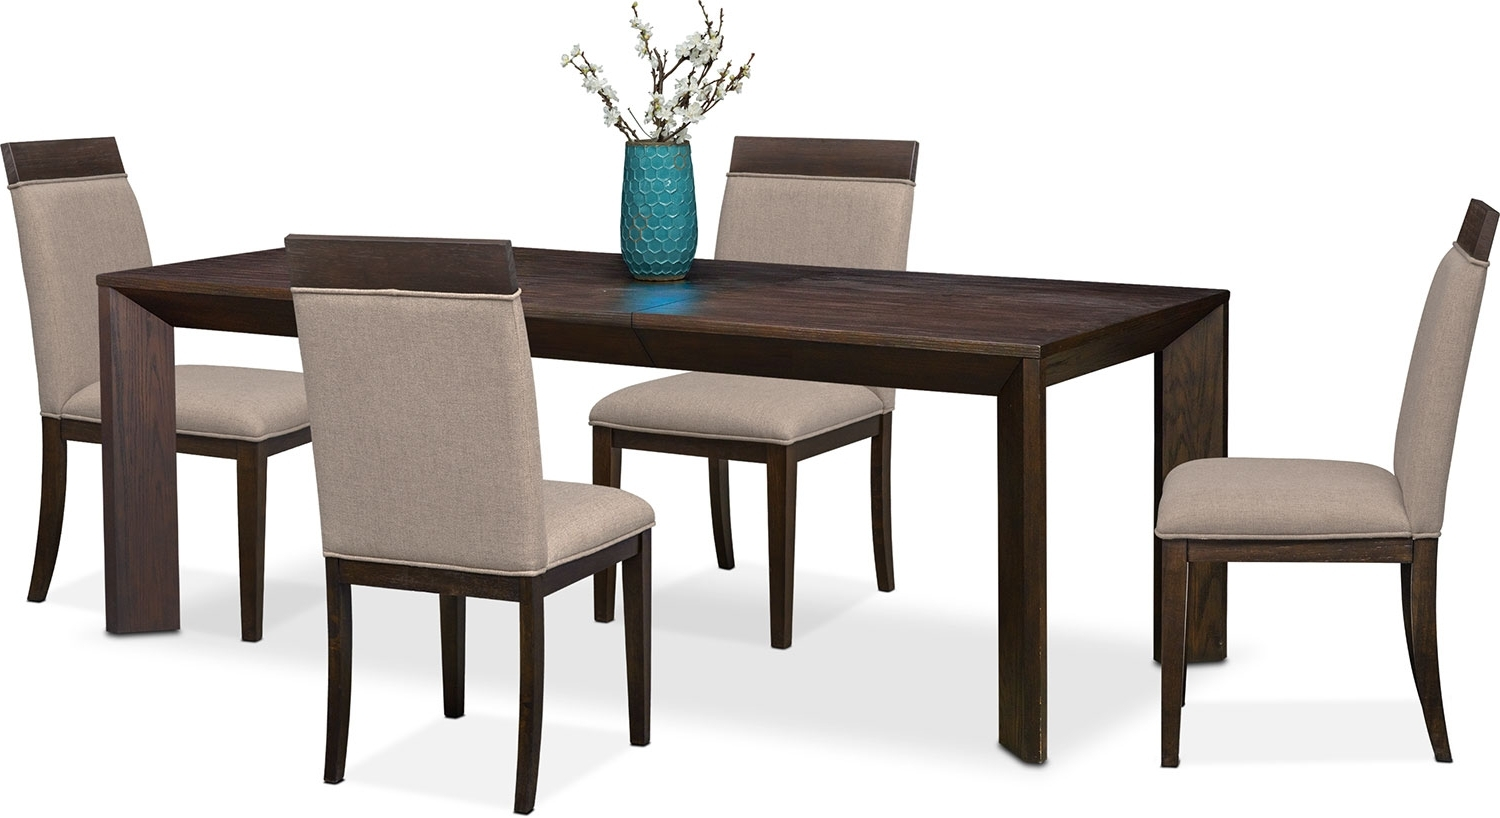 Value City Furniture In Current Gavin Dining Tables (Gallery 11 of 25)